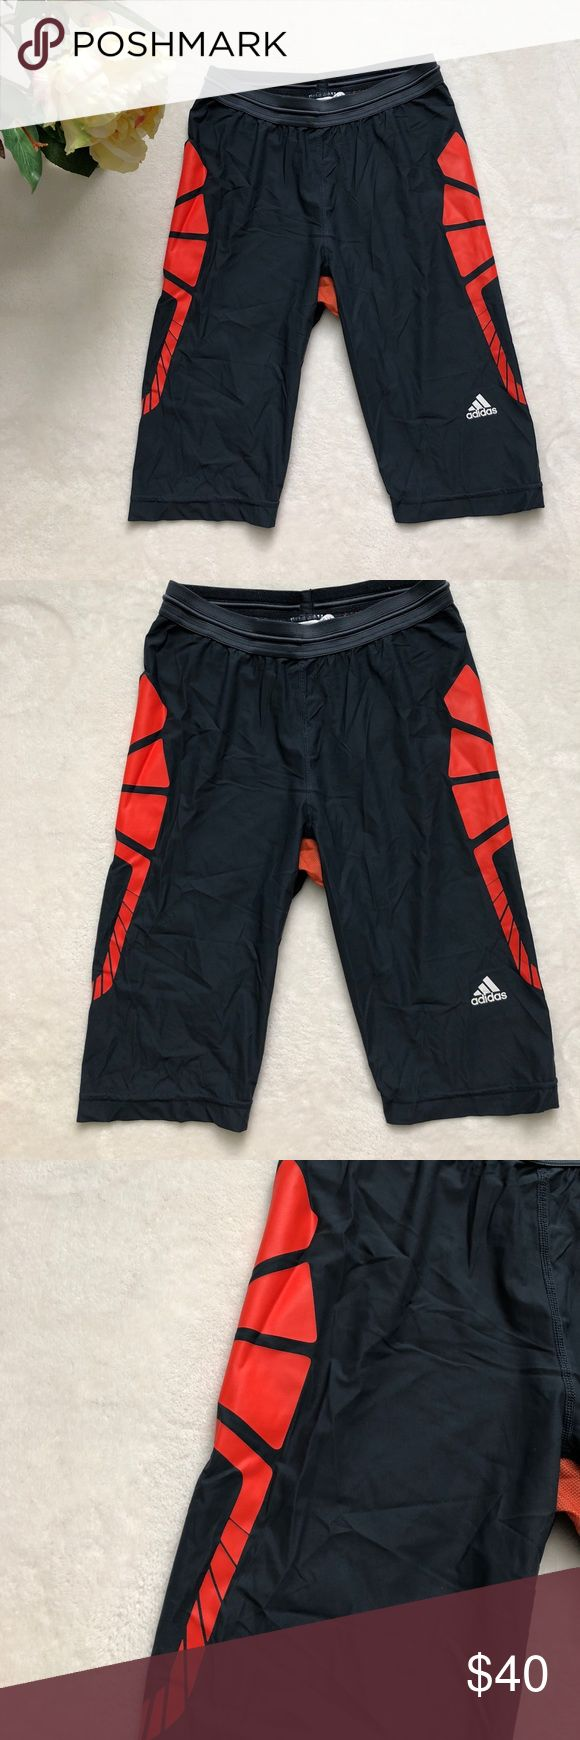 "⭐️Adidas⭐️bike running sport shorts grey orange Approximately measurements: Length: 20"" Waist: 24"" with elastic  Materials: 75% nylon, 25% elastane  Condition: This item is pre-owned but in great condition with no stains. Comes from a smoke free home.  Size: USA L but for boys, men size S, XS adidas Shorts Athletic"